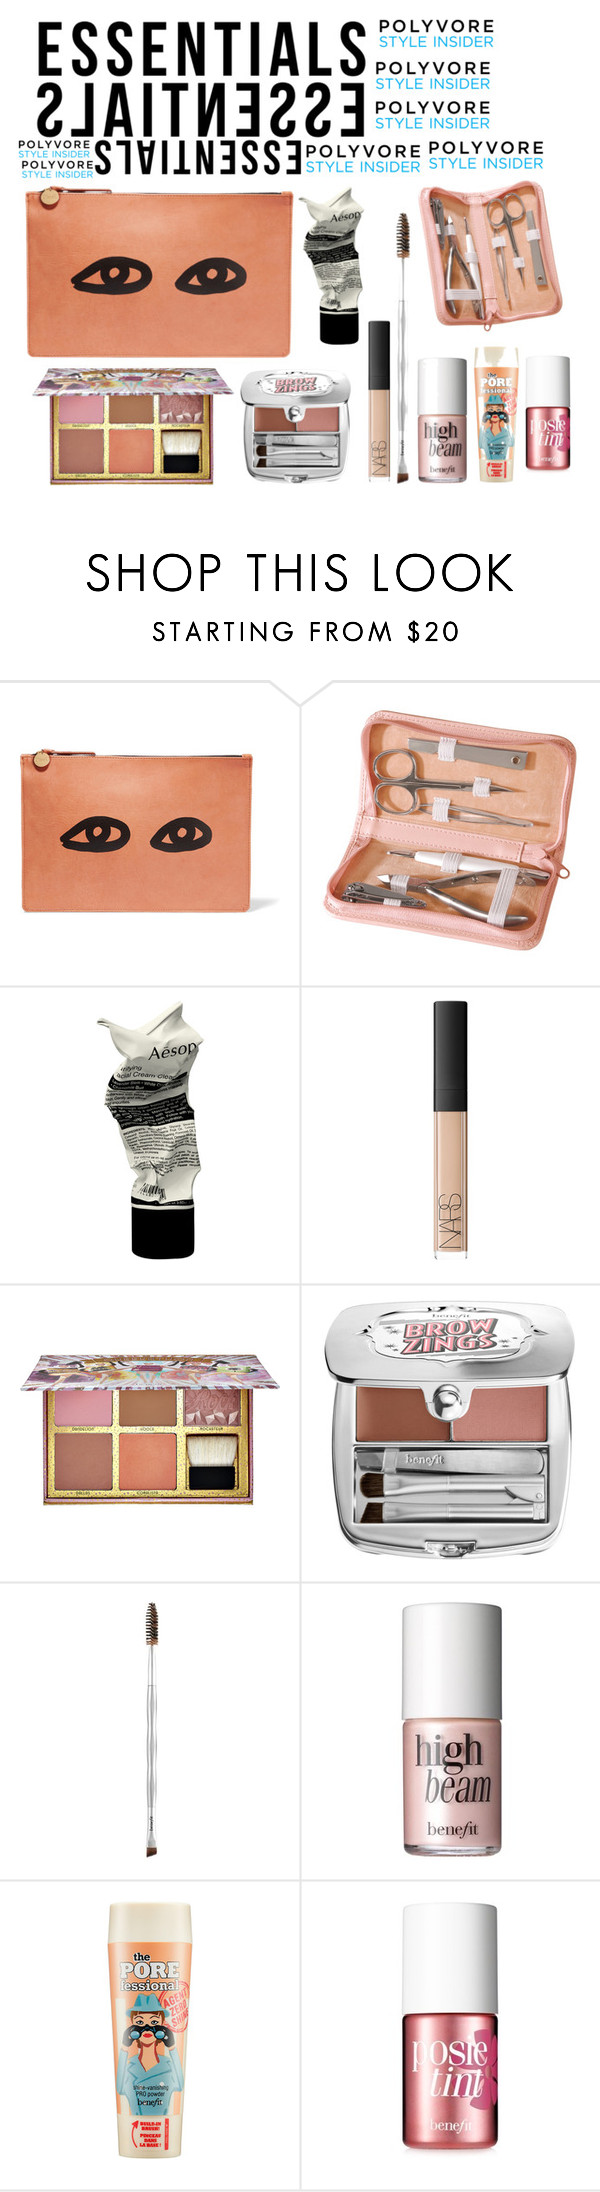 """""""Untitled #345"""" by alratajalsayegh ❤ liked on Polyvore featuring beauty, Clare V., Royce Leather, Aesop, NARS Cosmetics, Benefit, contestentry, PVStyleInsiderContest and makeupbagstaples"""